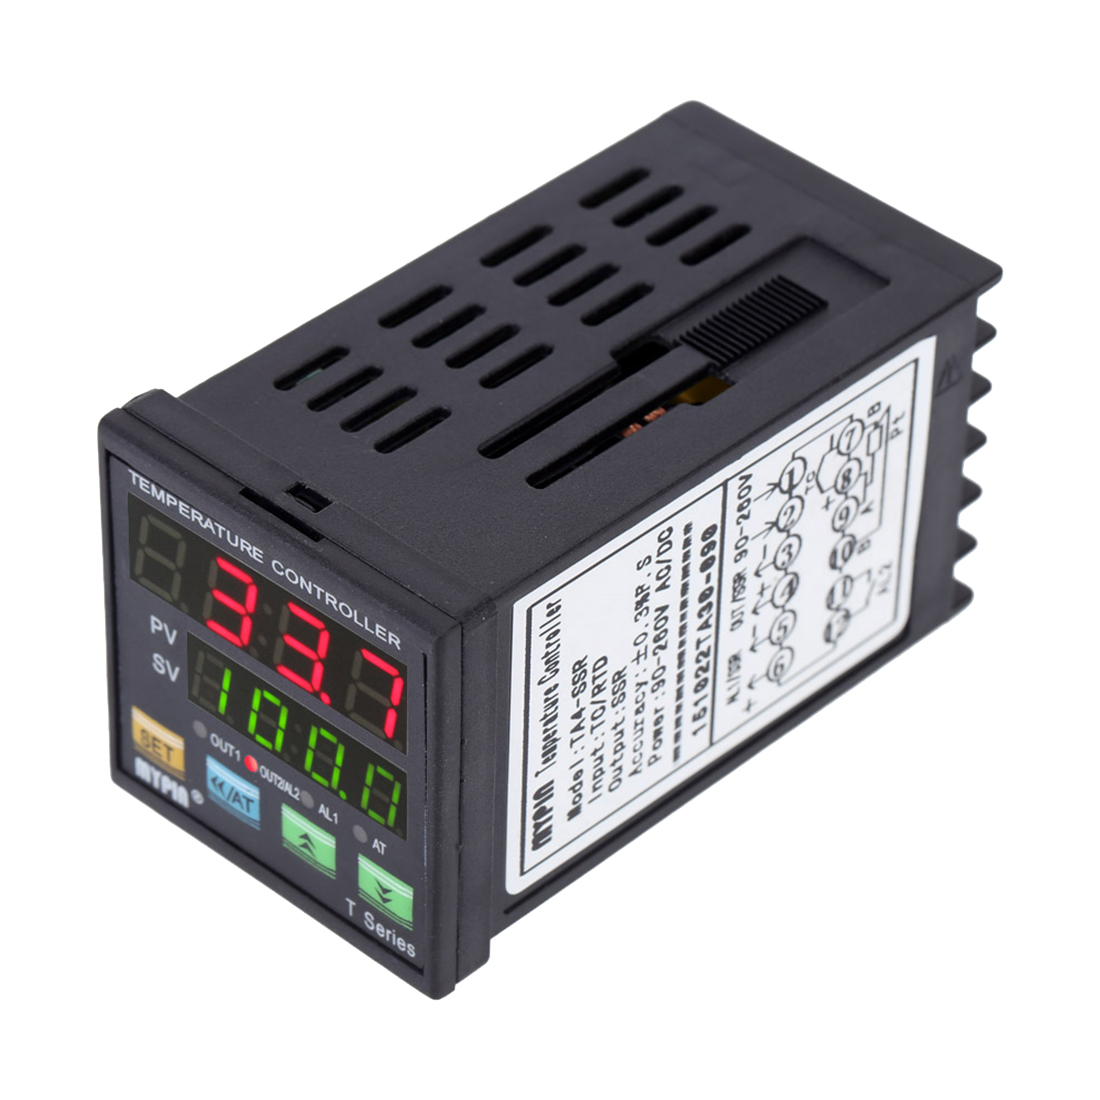 Mypin Ta4 Snr Digital Temperature Controller Ssr 25 Da Solid State Relay German Module M5l0 In Instruments From Tools On Alibaba